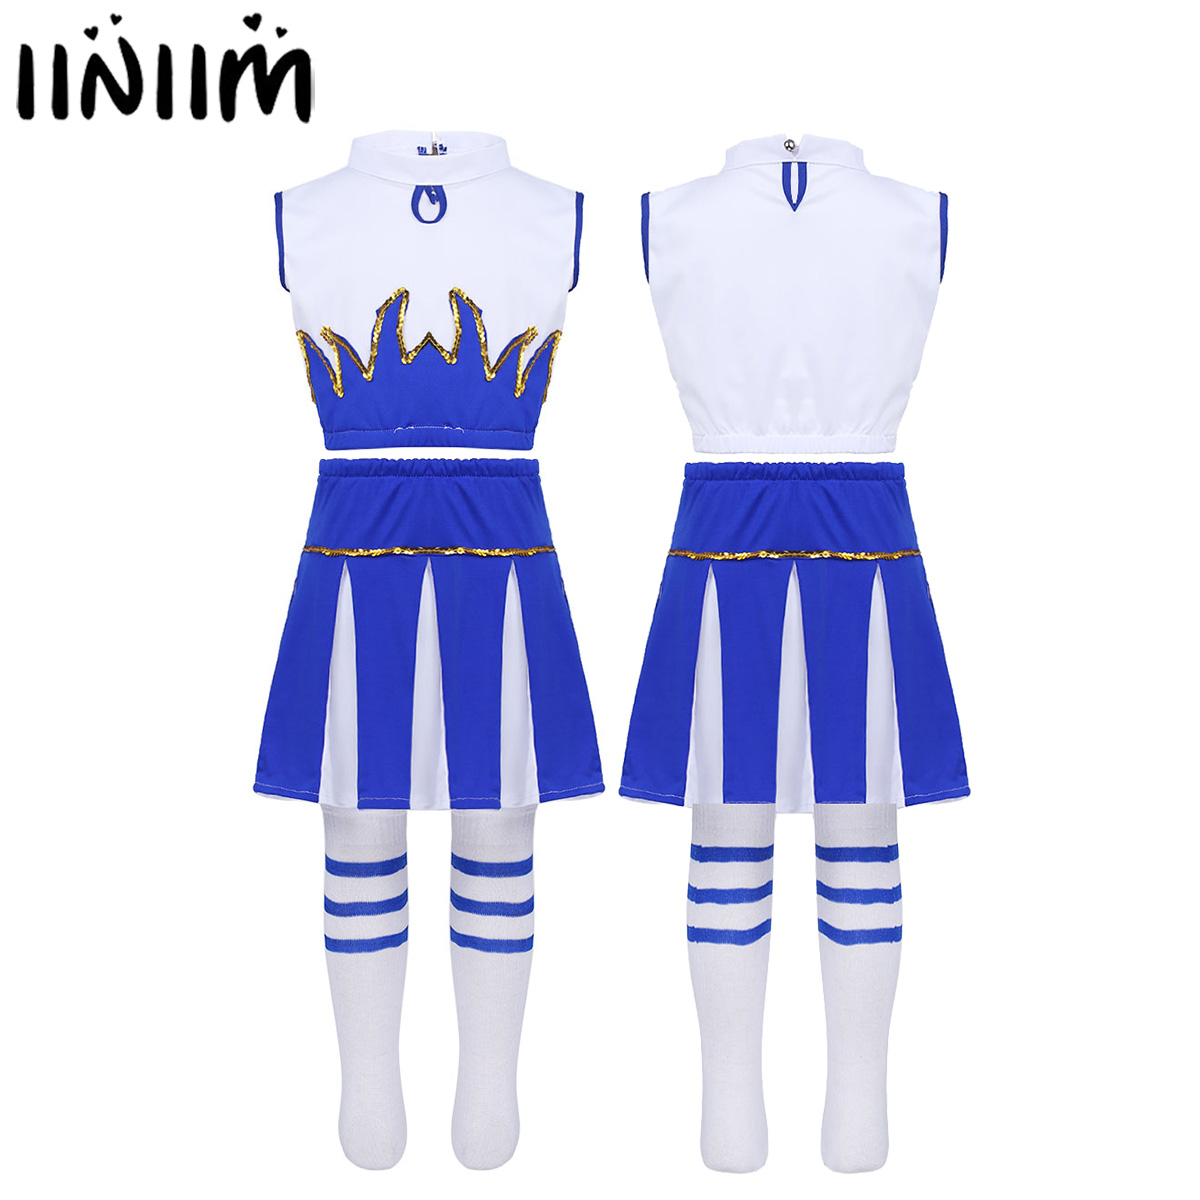 Kids Girls Cheerleader Costume Ballerina Sleeveless Crop Top with Skirt and Socks for Cosplay Party Ballroom Jazz Dancewear